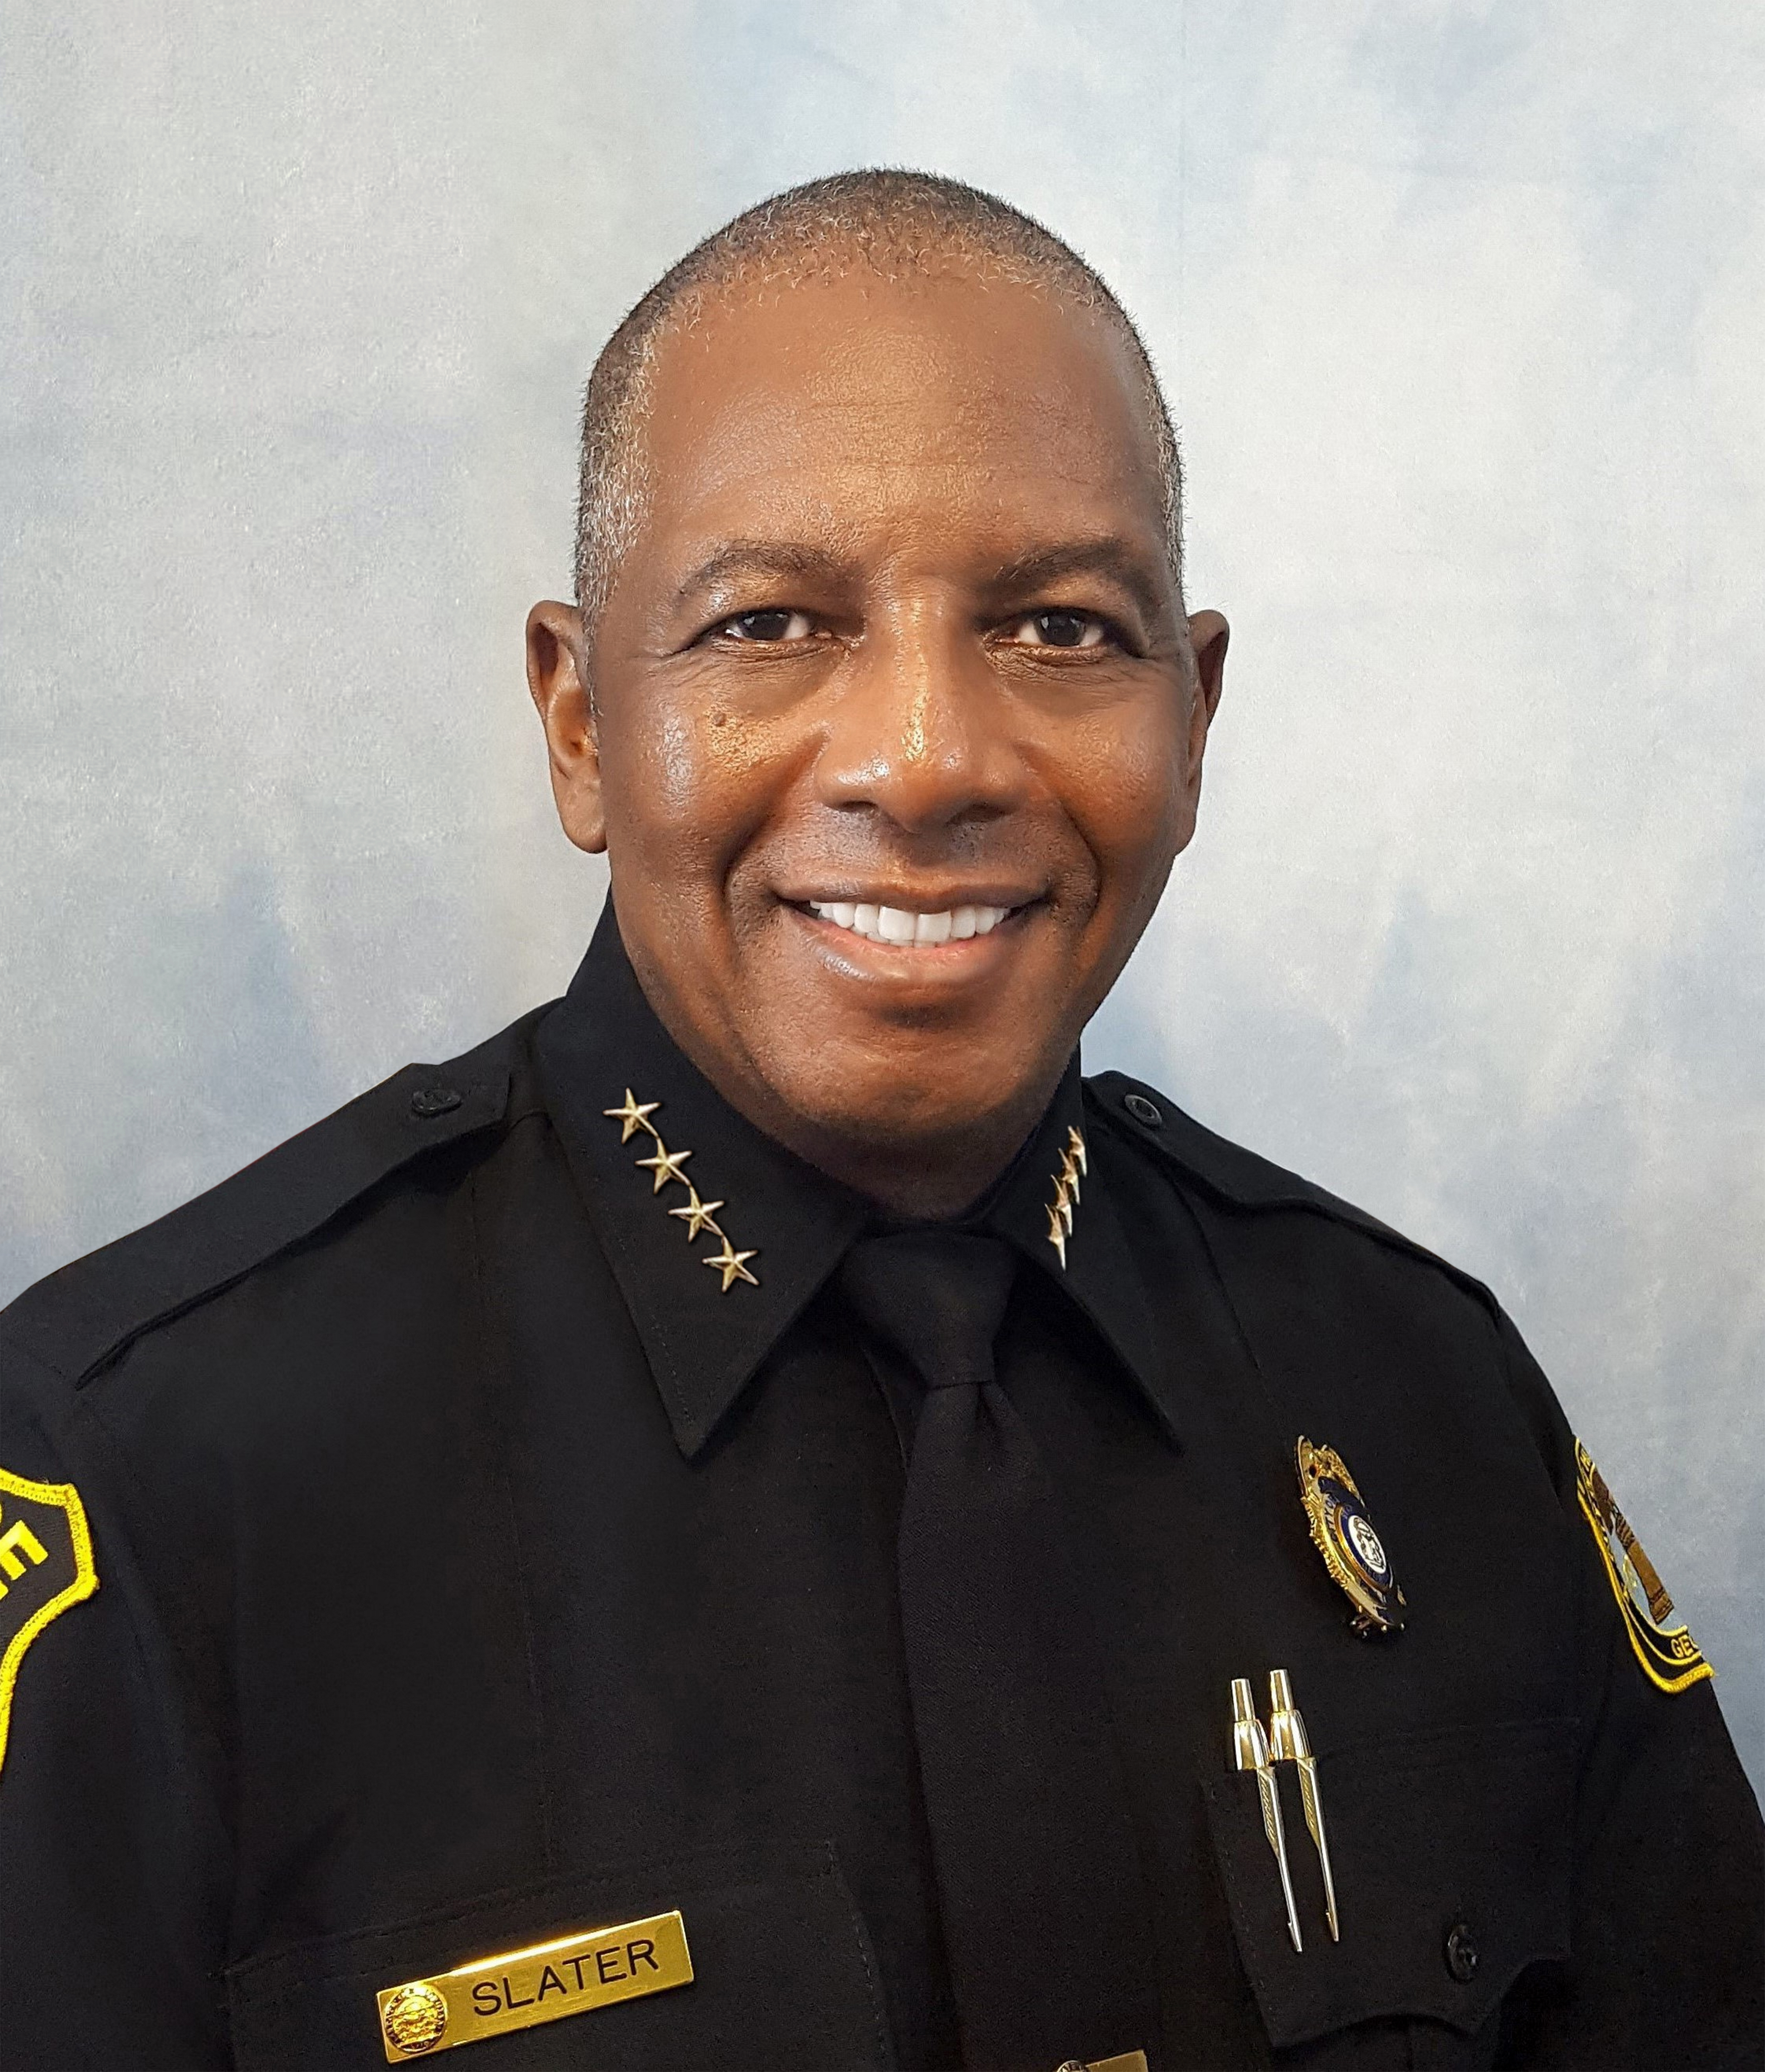 Hinesville Police Department Chief Lloyd Slater